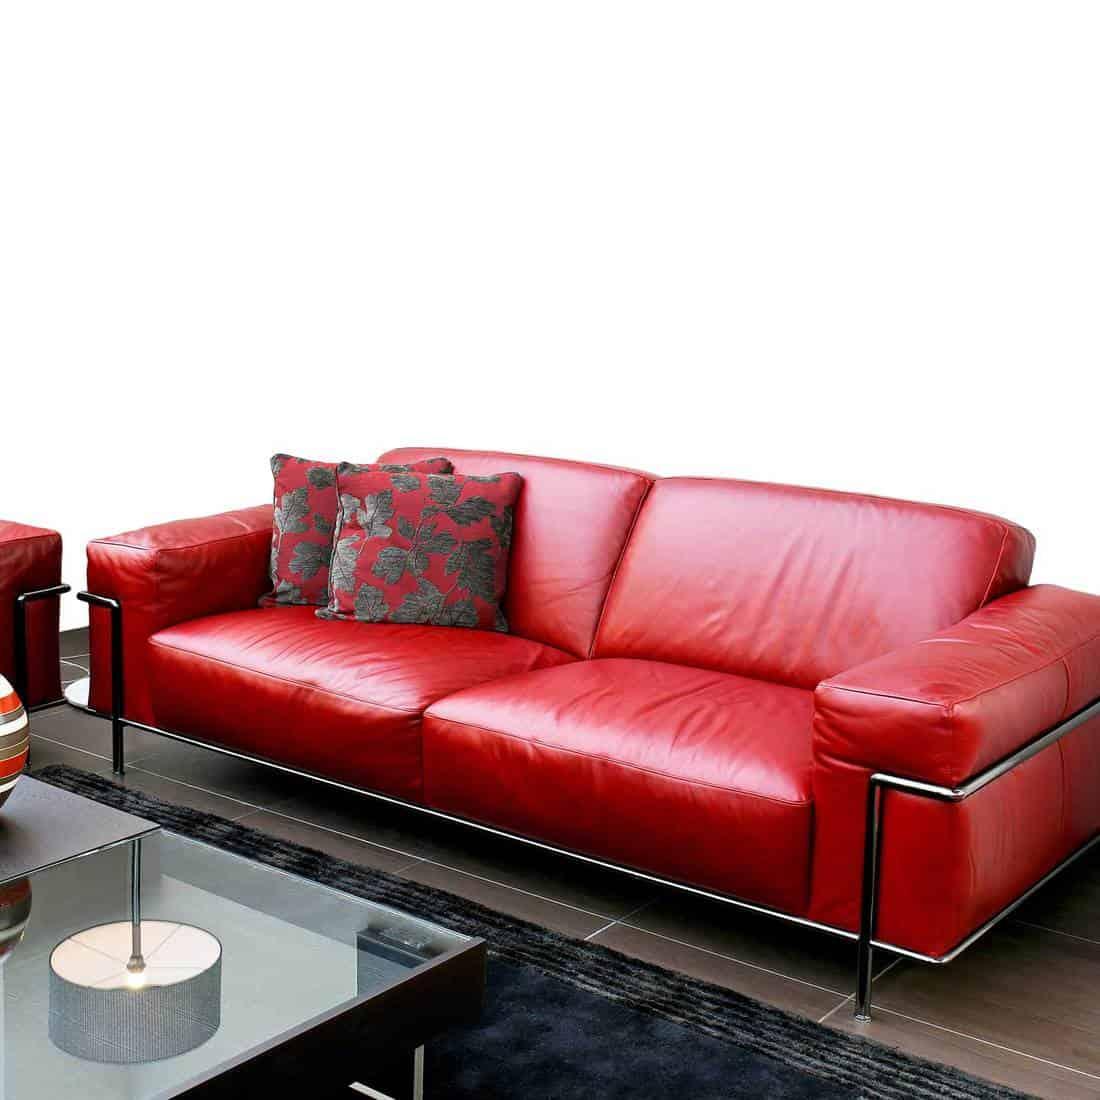 Red leather sofa and throw pillows